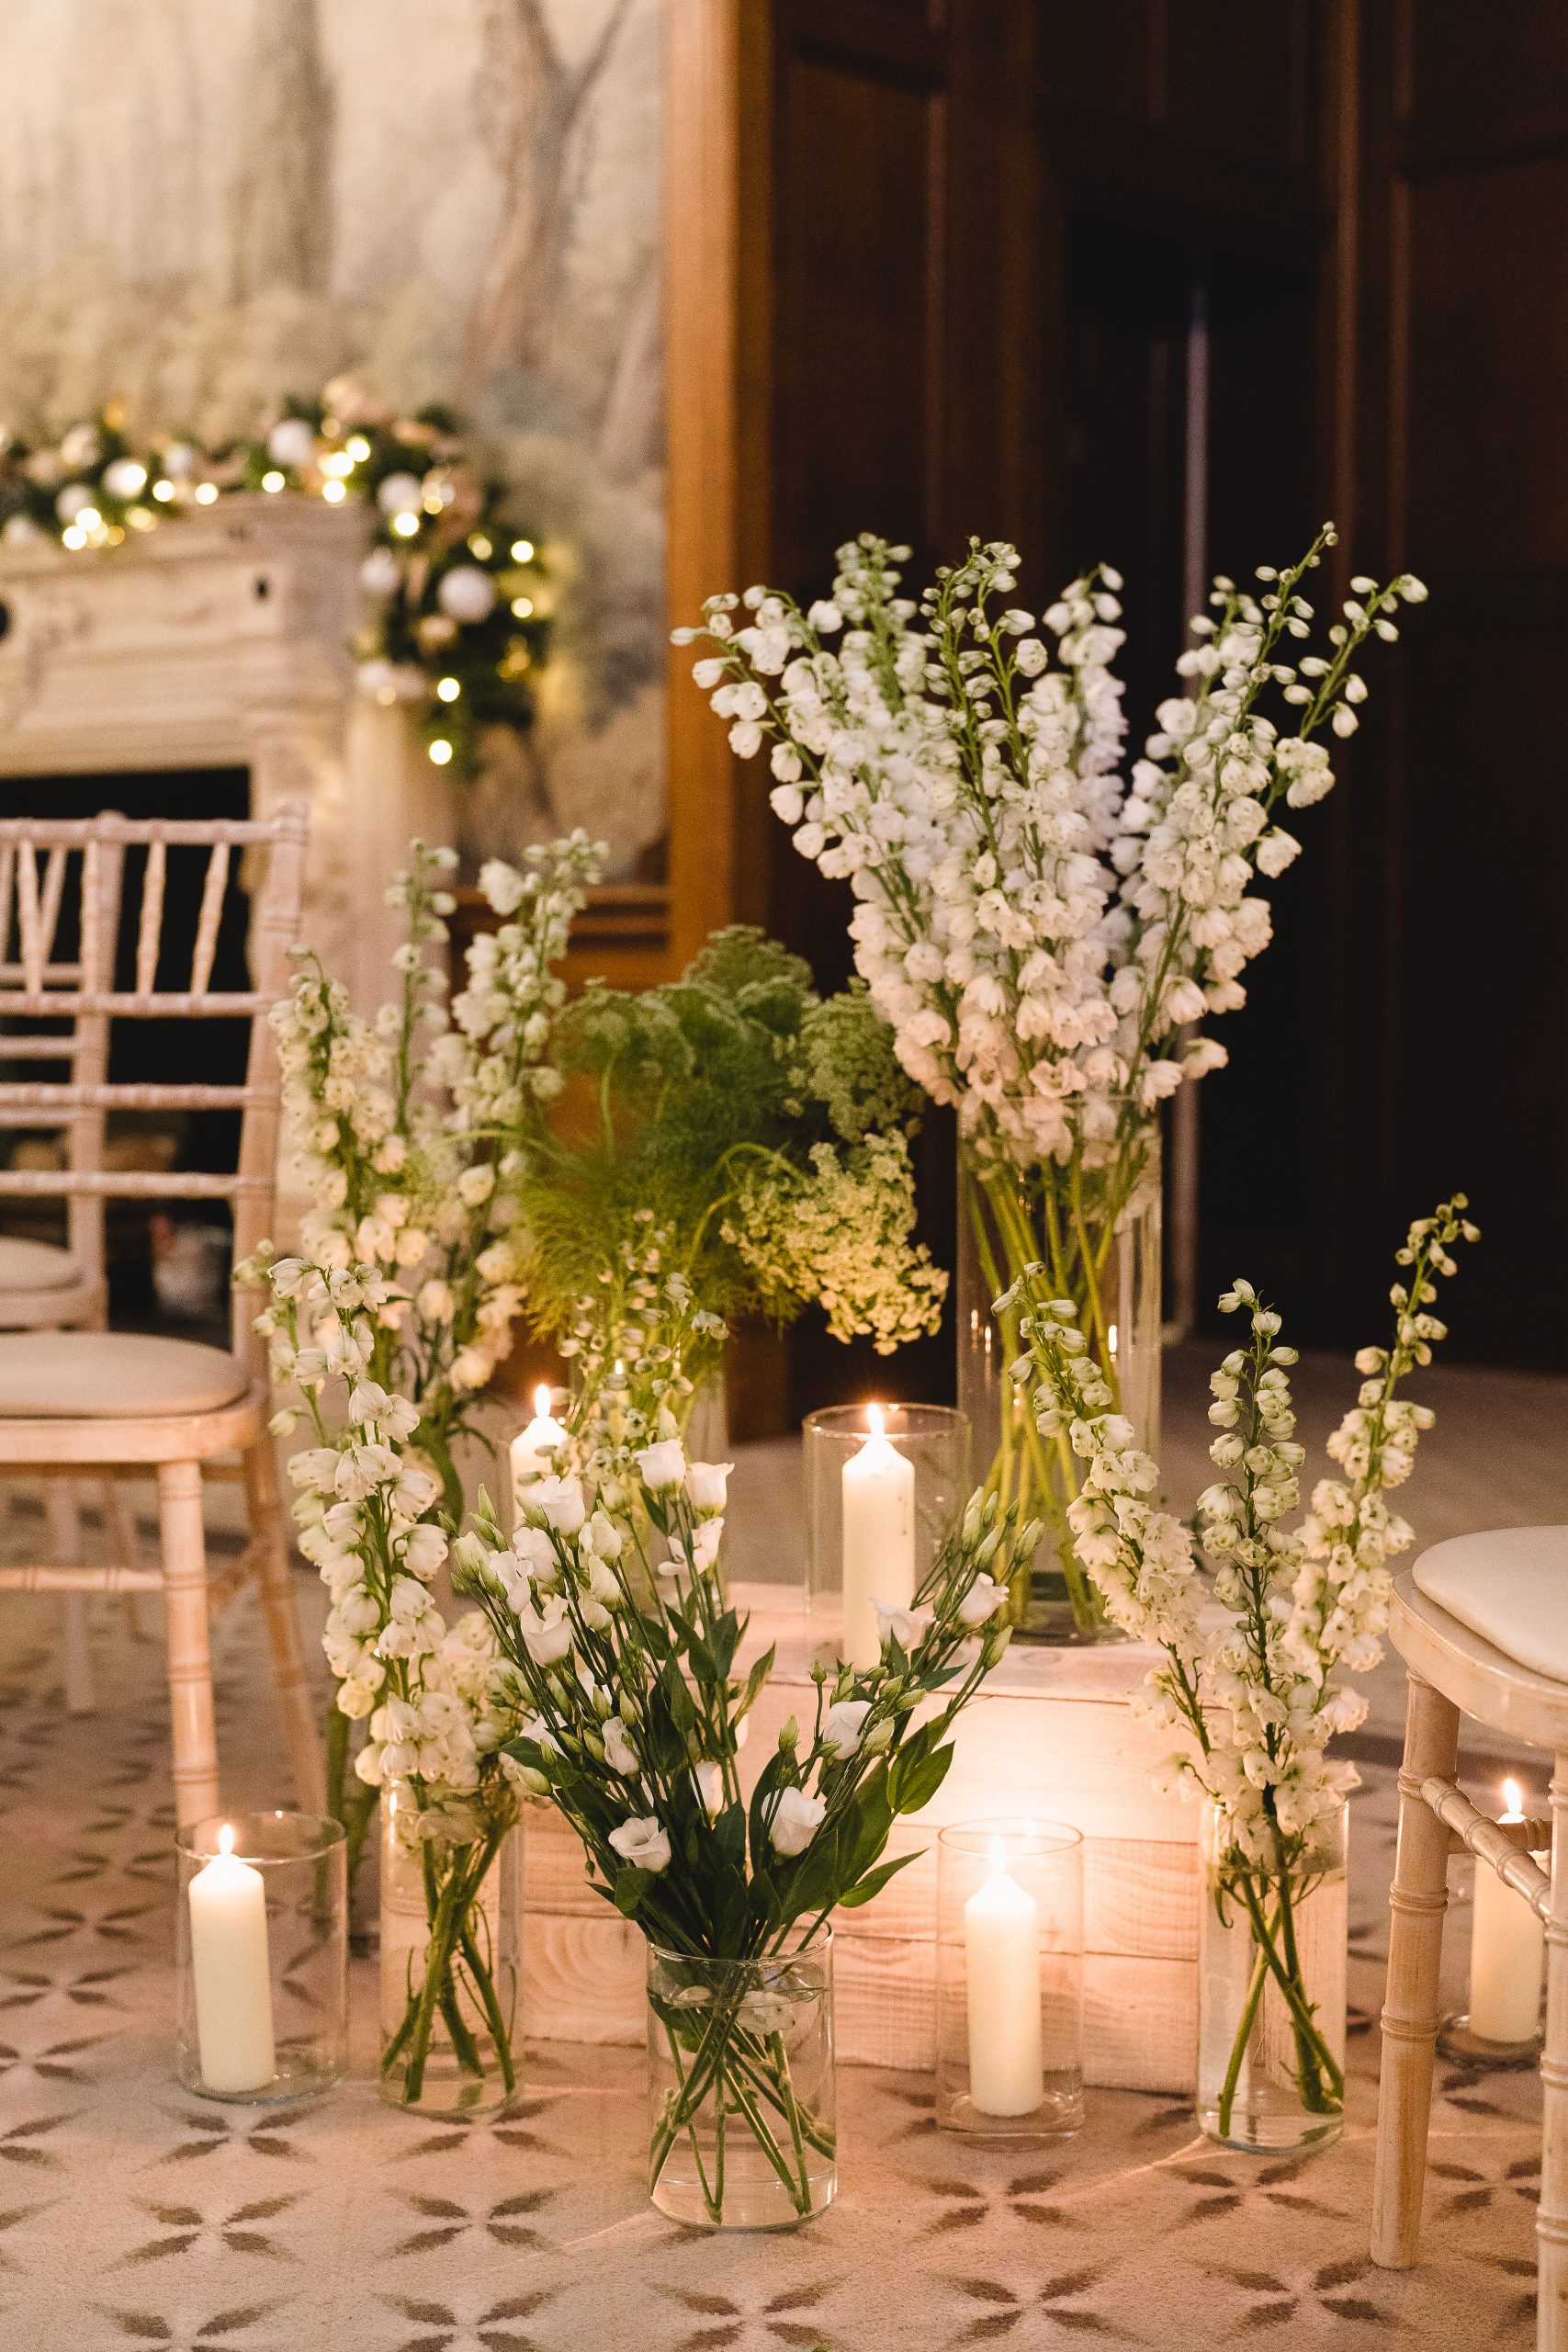 Candles and flowers decorating aisle at wedding ceremony